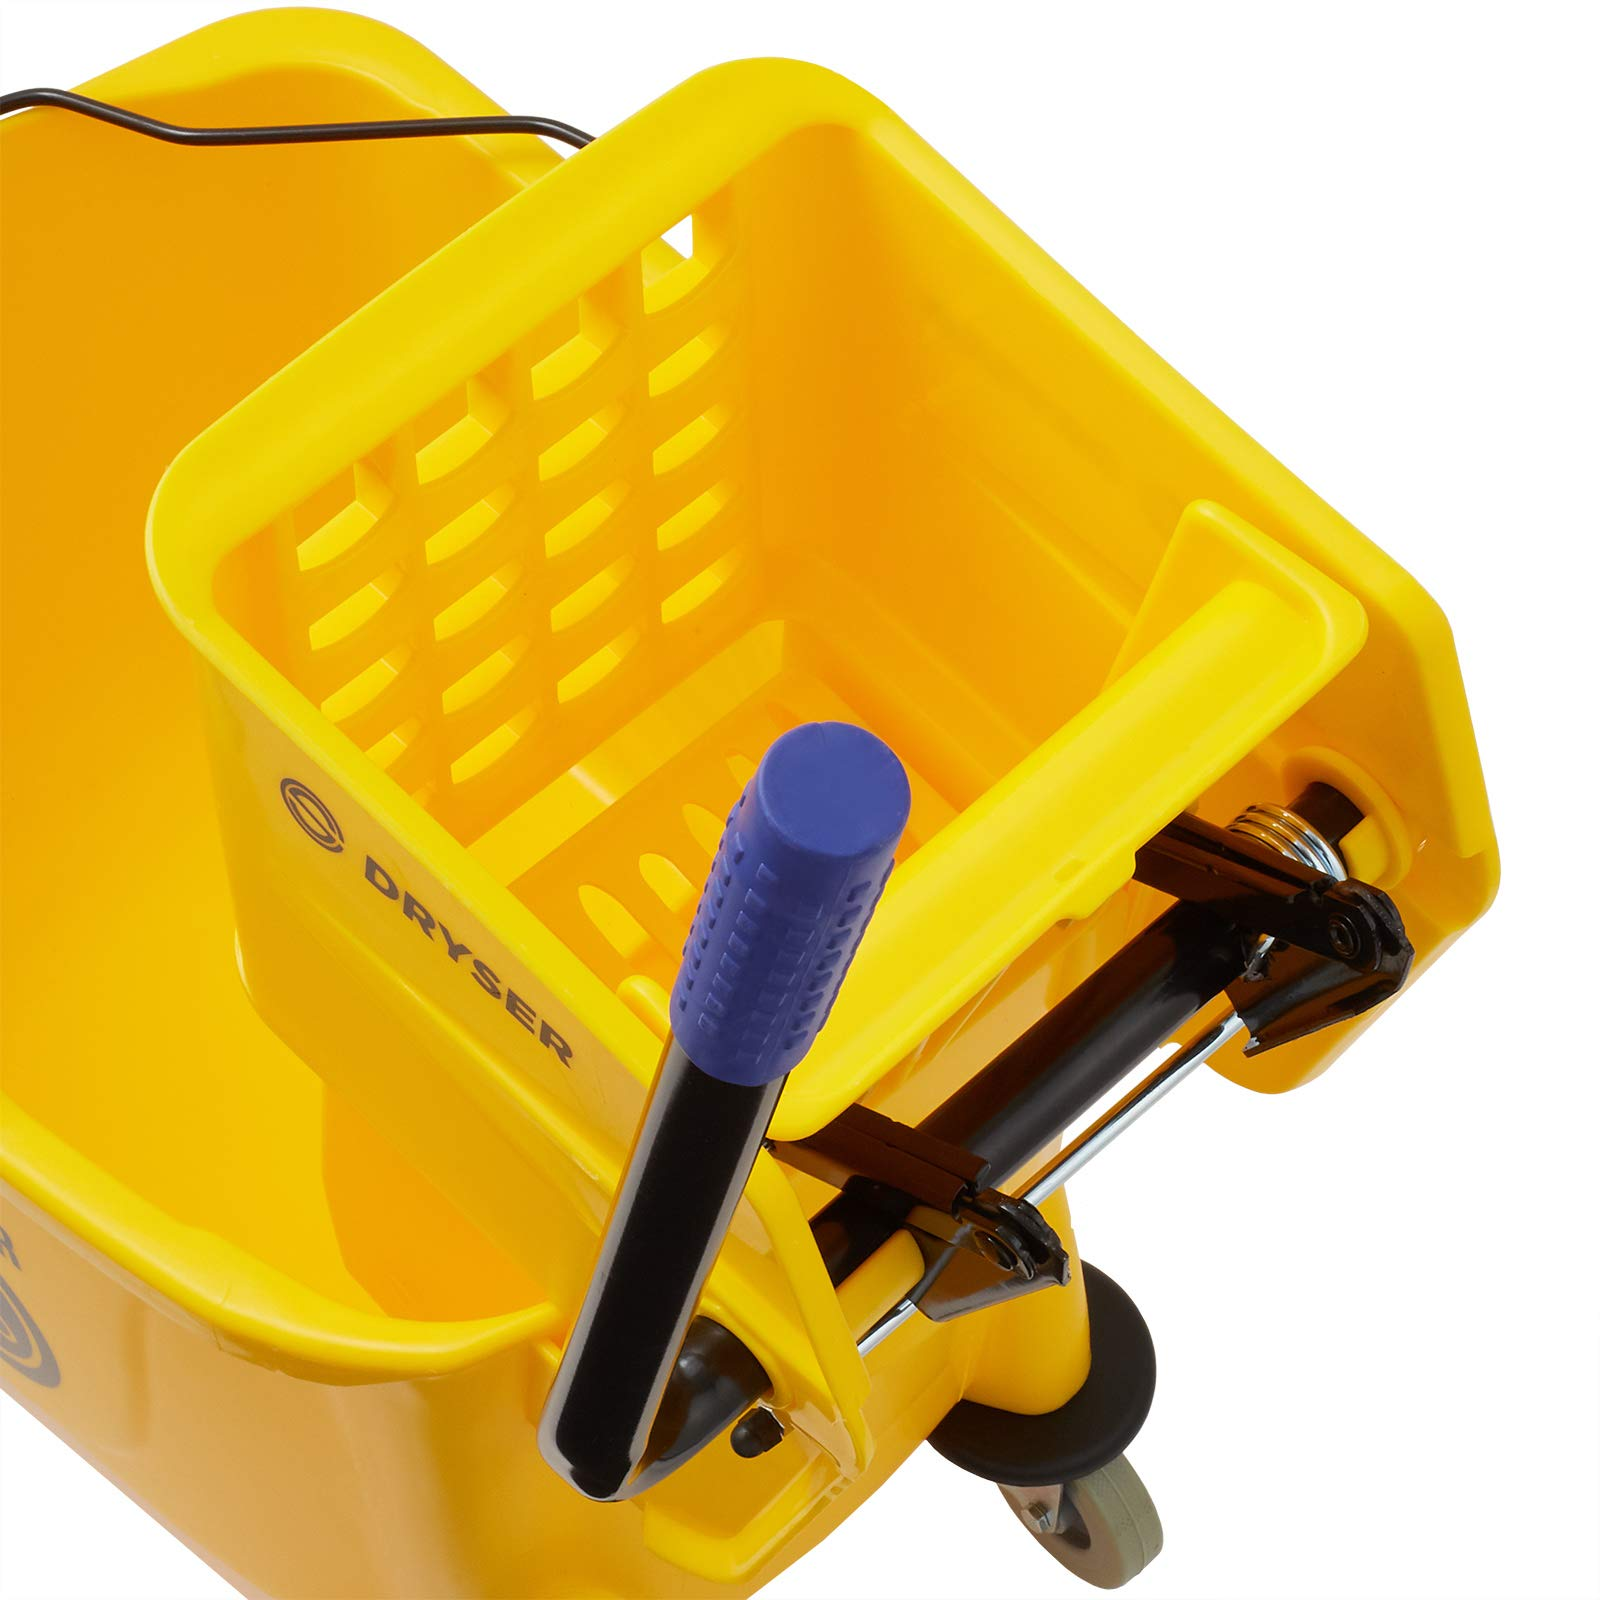 Dryser Commercial Mop Bucket with Side Press Wringer, 33 Quart, Yellow by Dryser (Image #4)